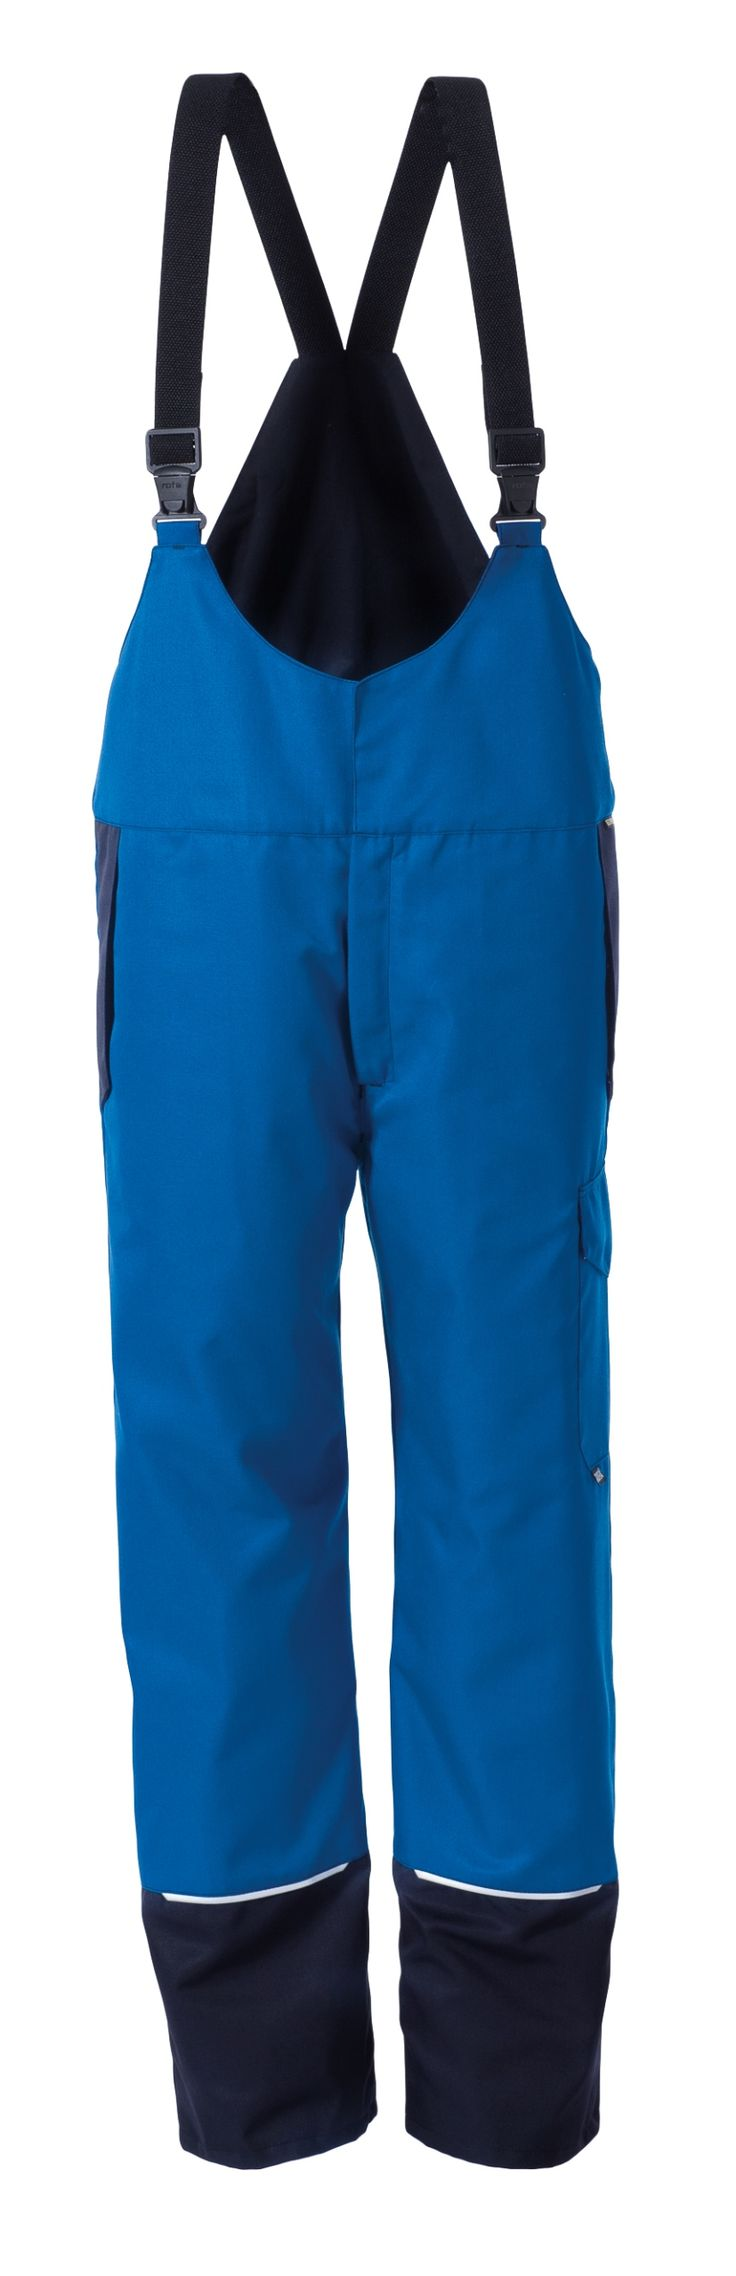 Gore-Tex Loki Dungarees from Industrial Workwear